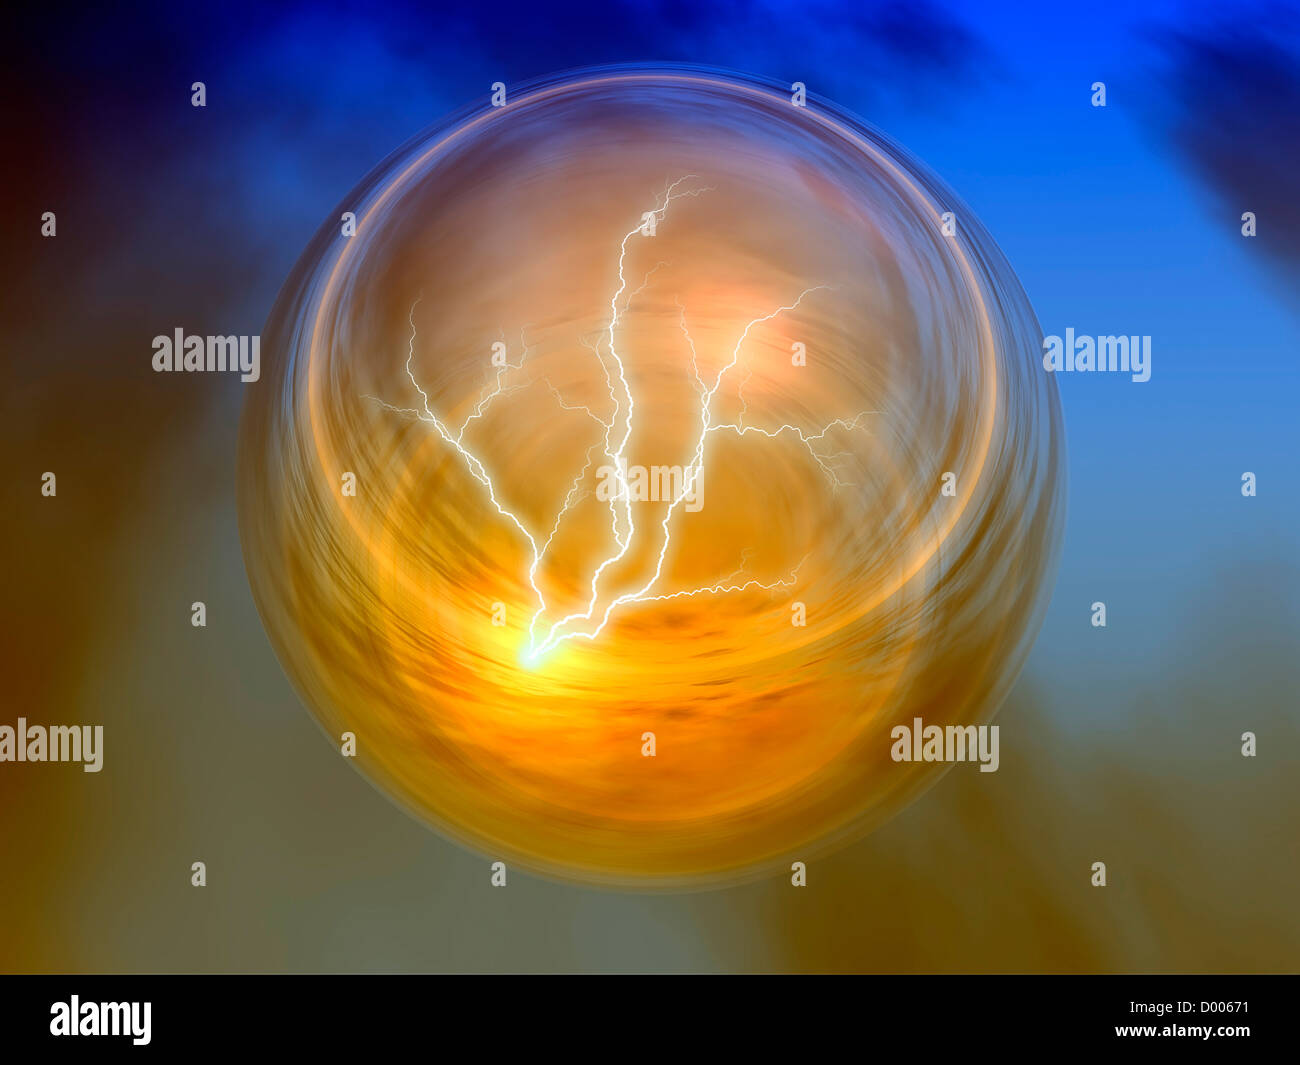 a conceptual illustration of energy - Stock Image